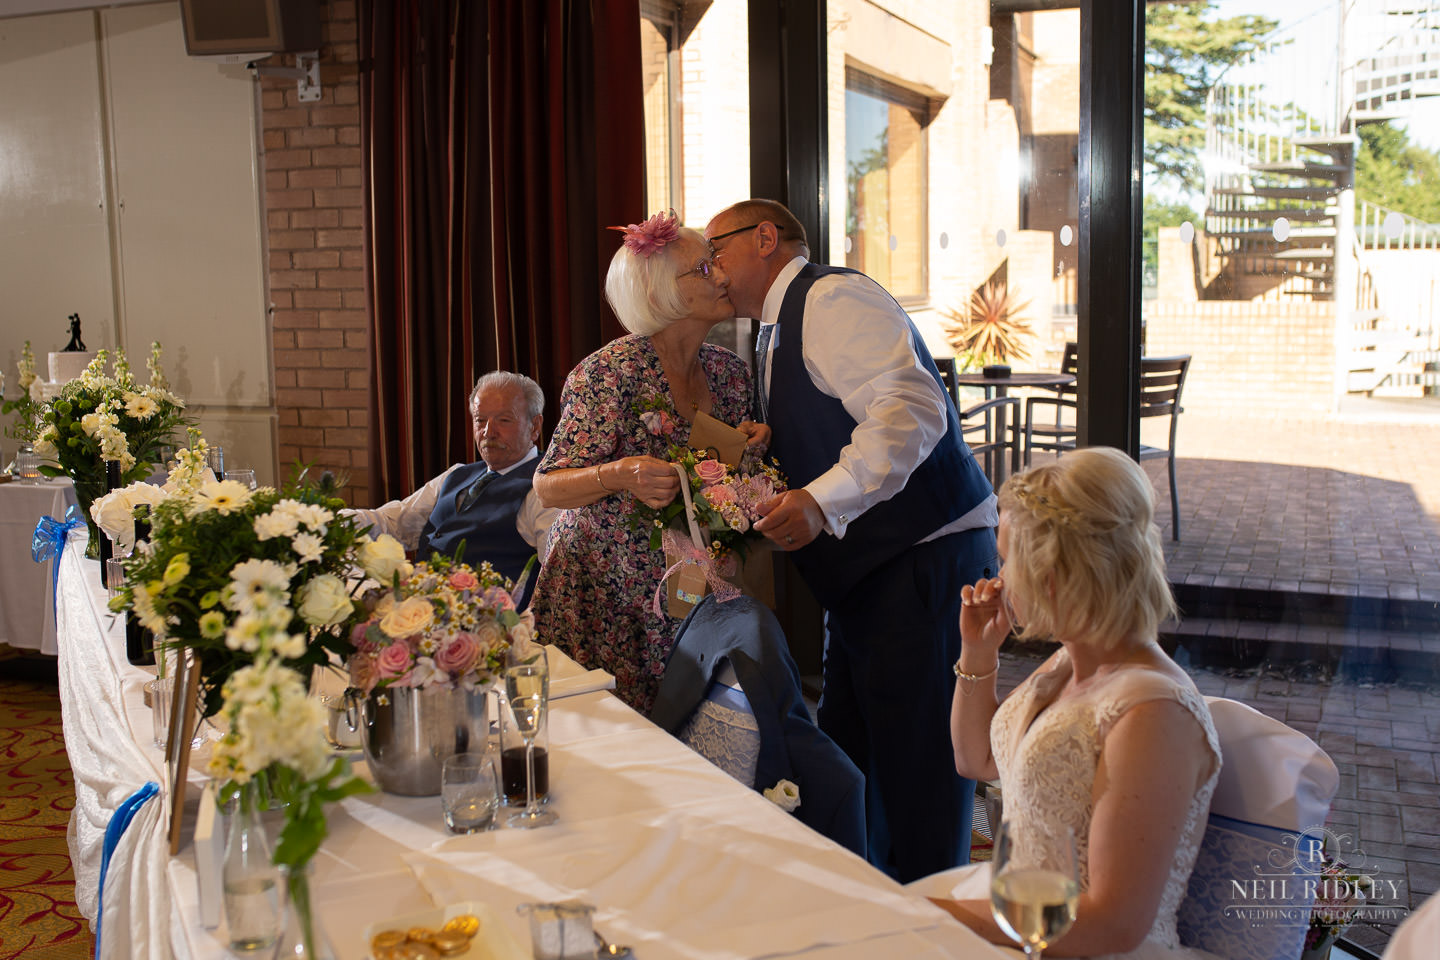 Groom gives a bouquet of flowers to mother of the bride during the Wedding breakfast at Maccdonald Portal Spa and Hotel